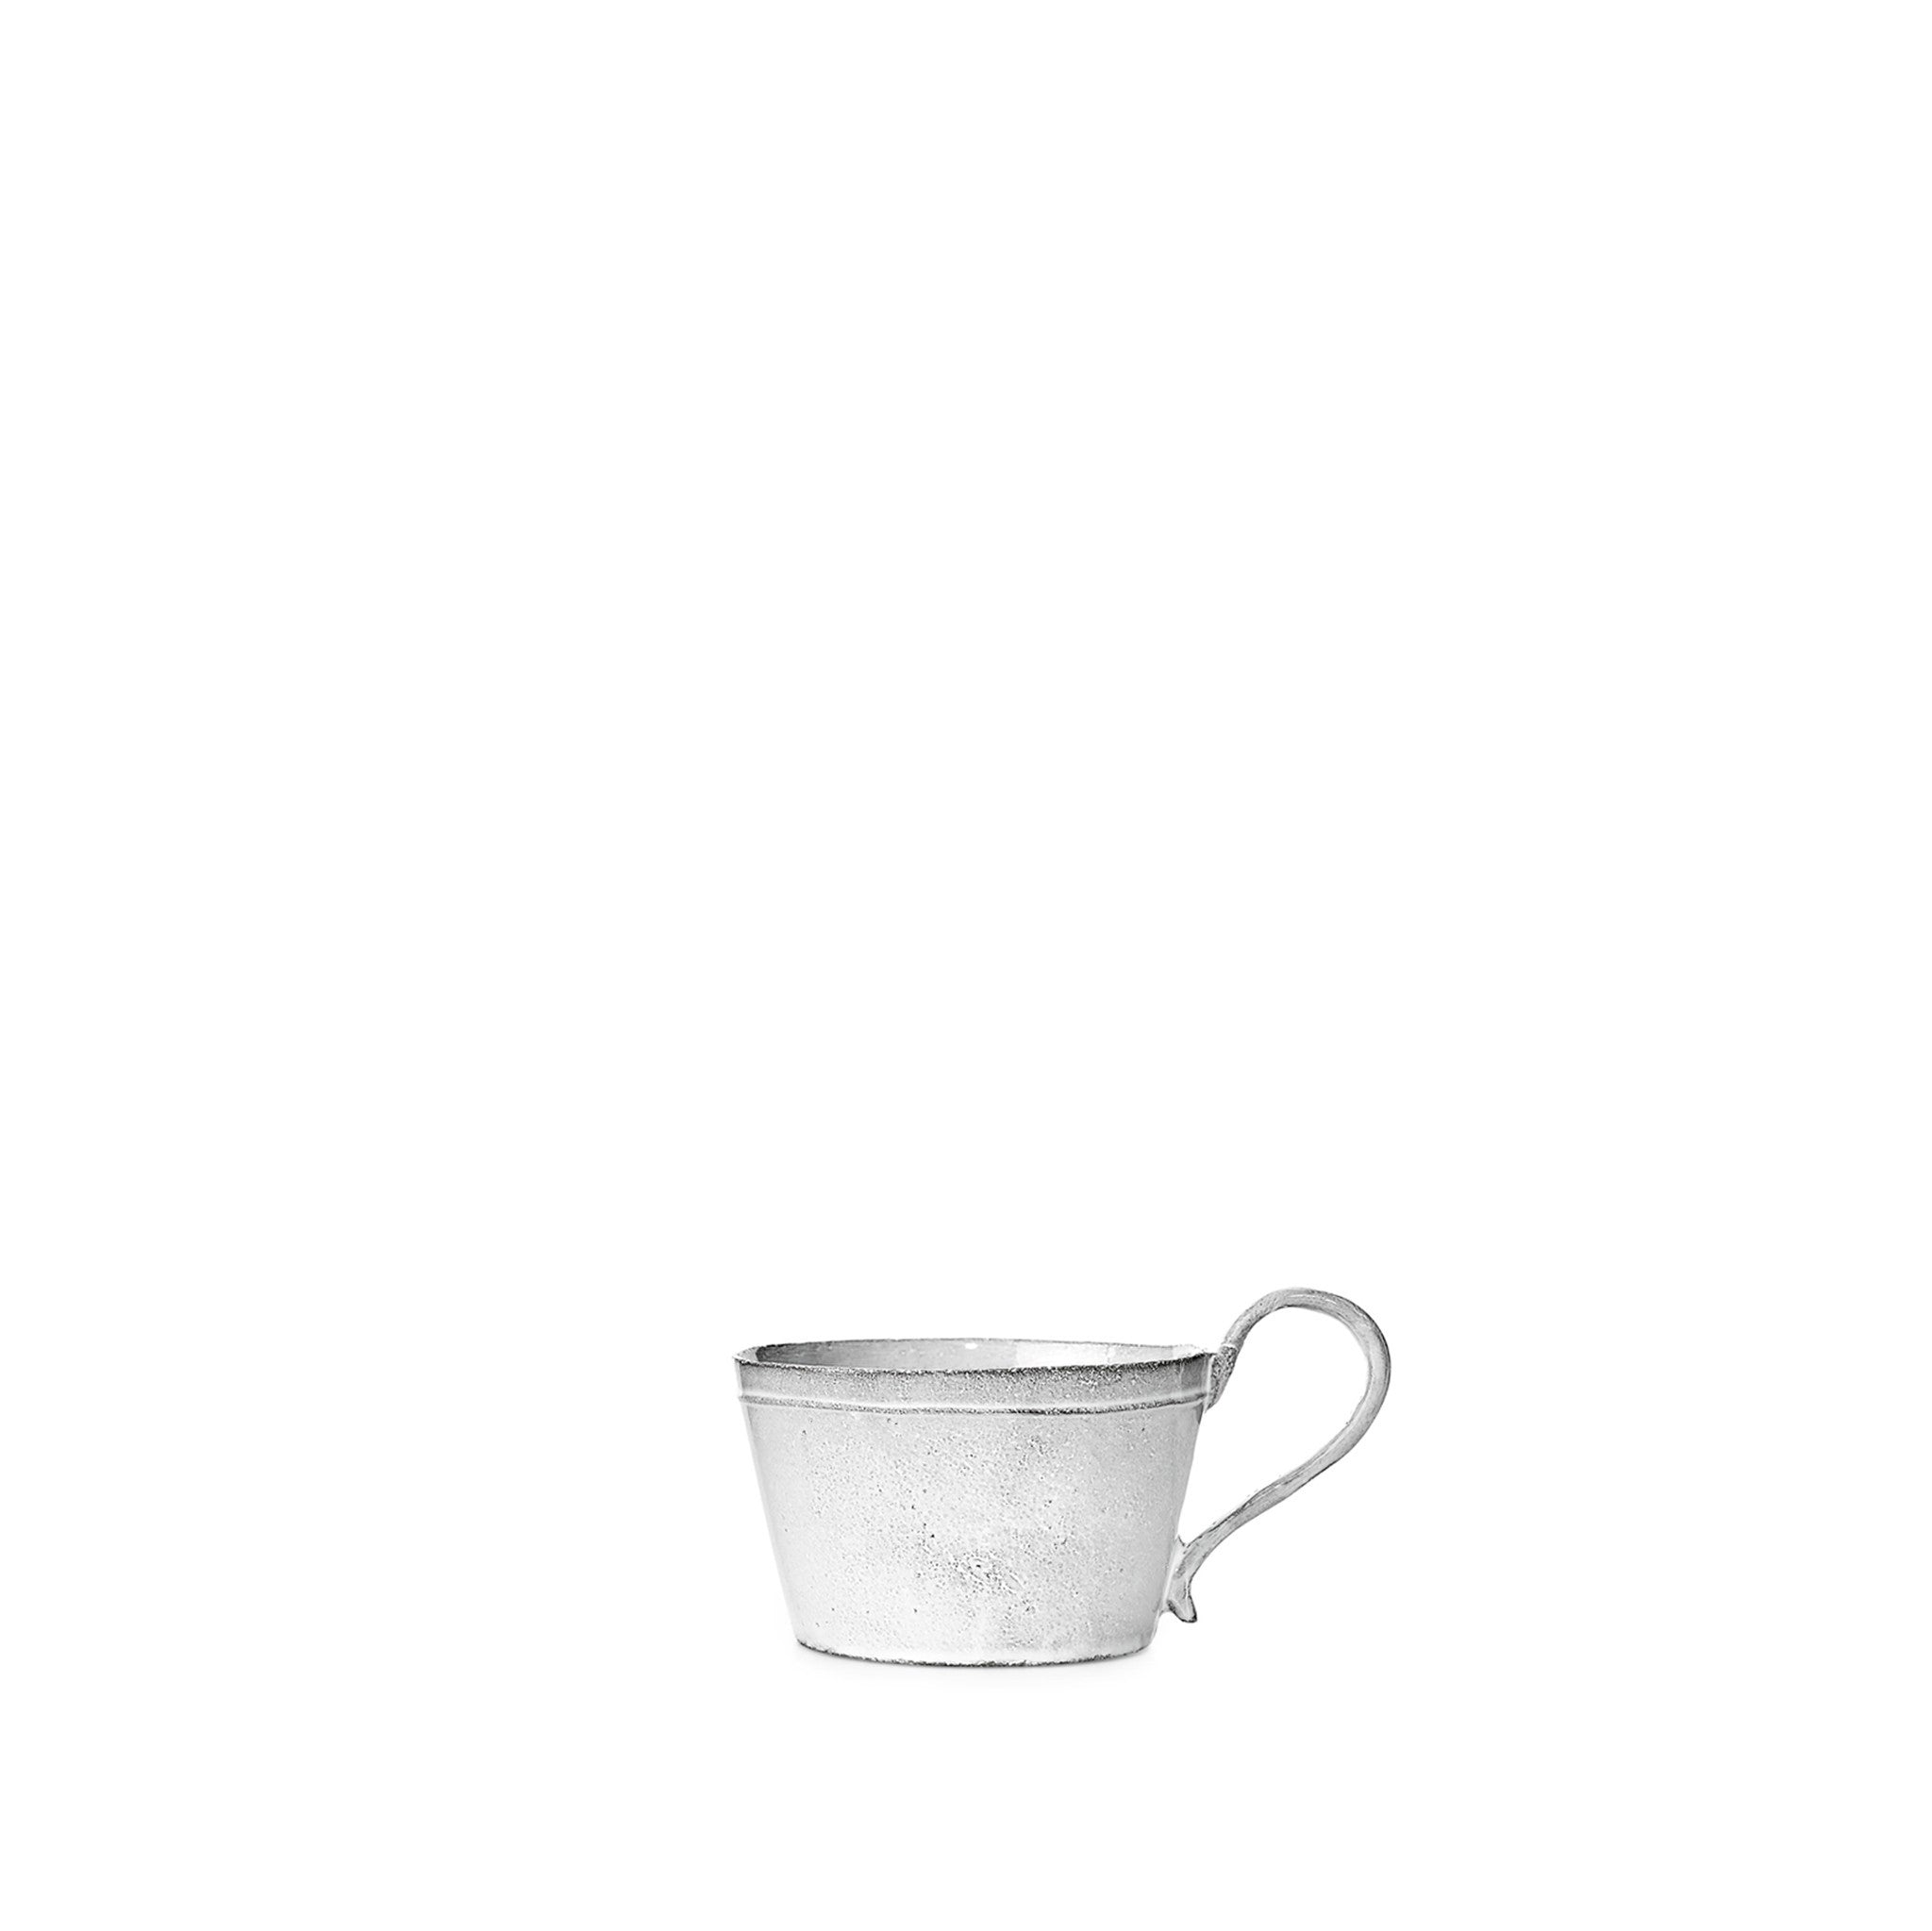 Simple Hot Chocolate Cup by Astier de Villatte